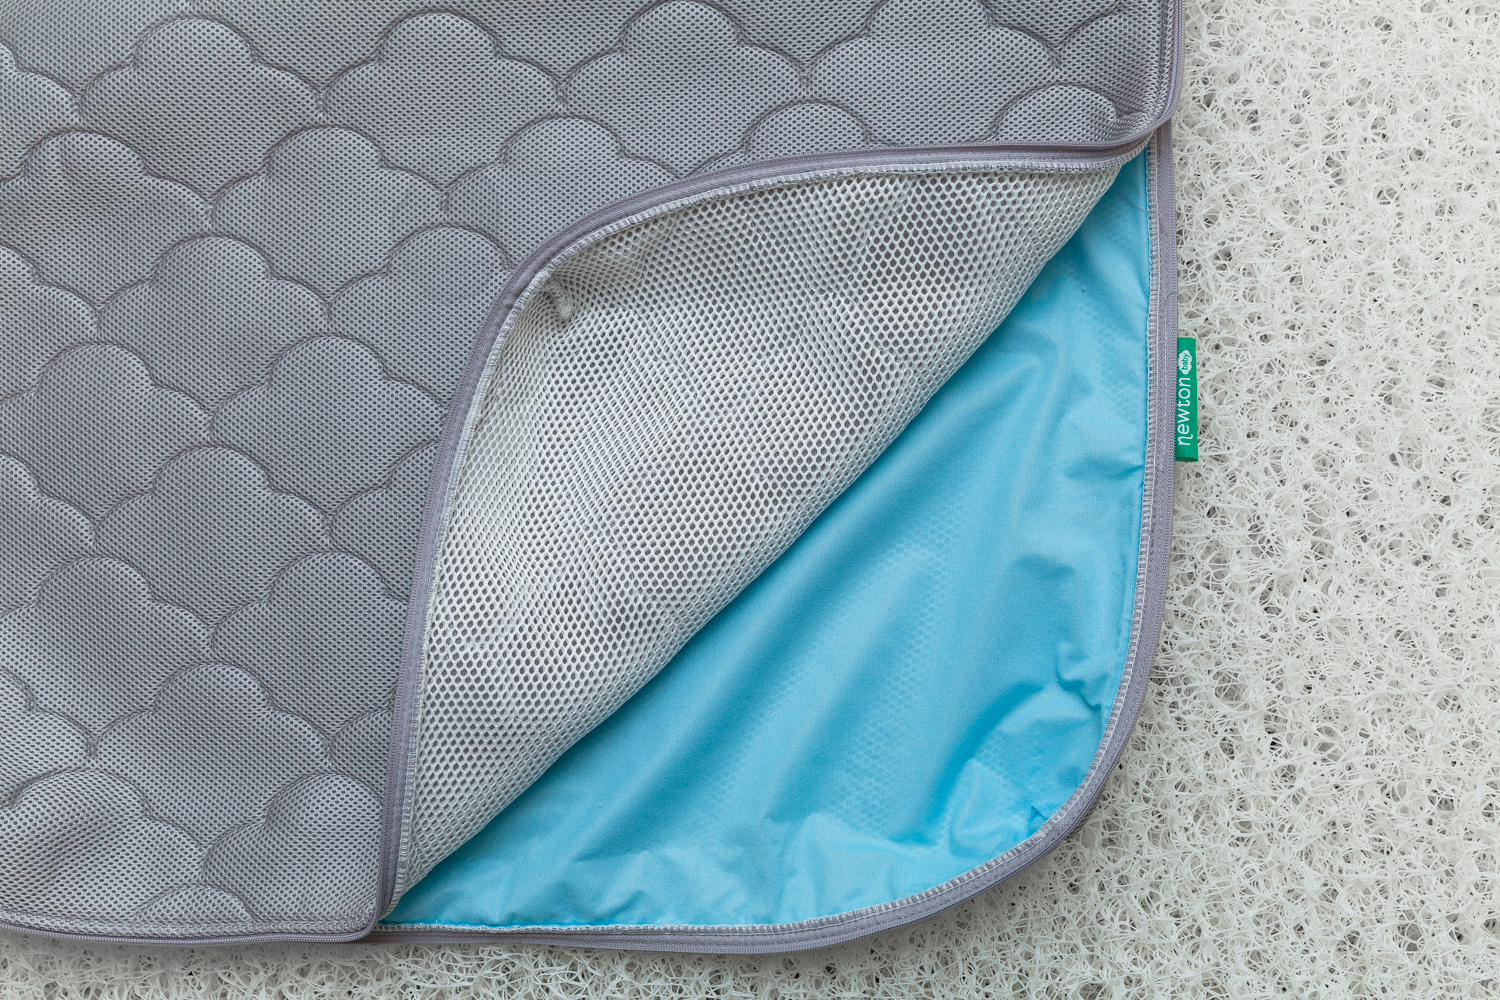 The unzipped 3D Spacer Cover displaying blue waterproof liner